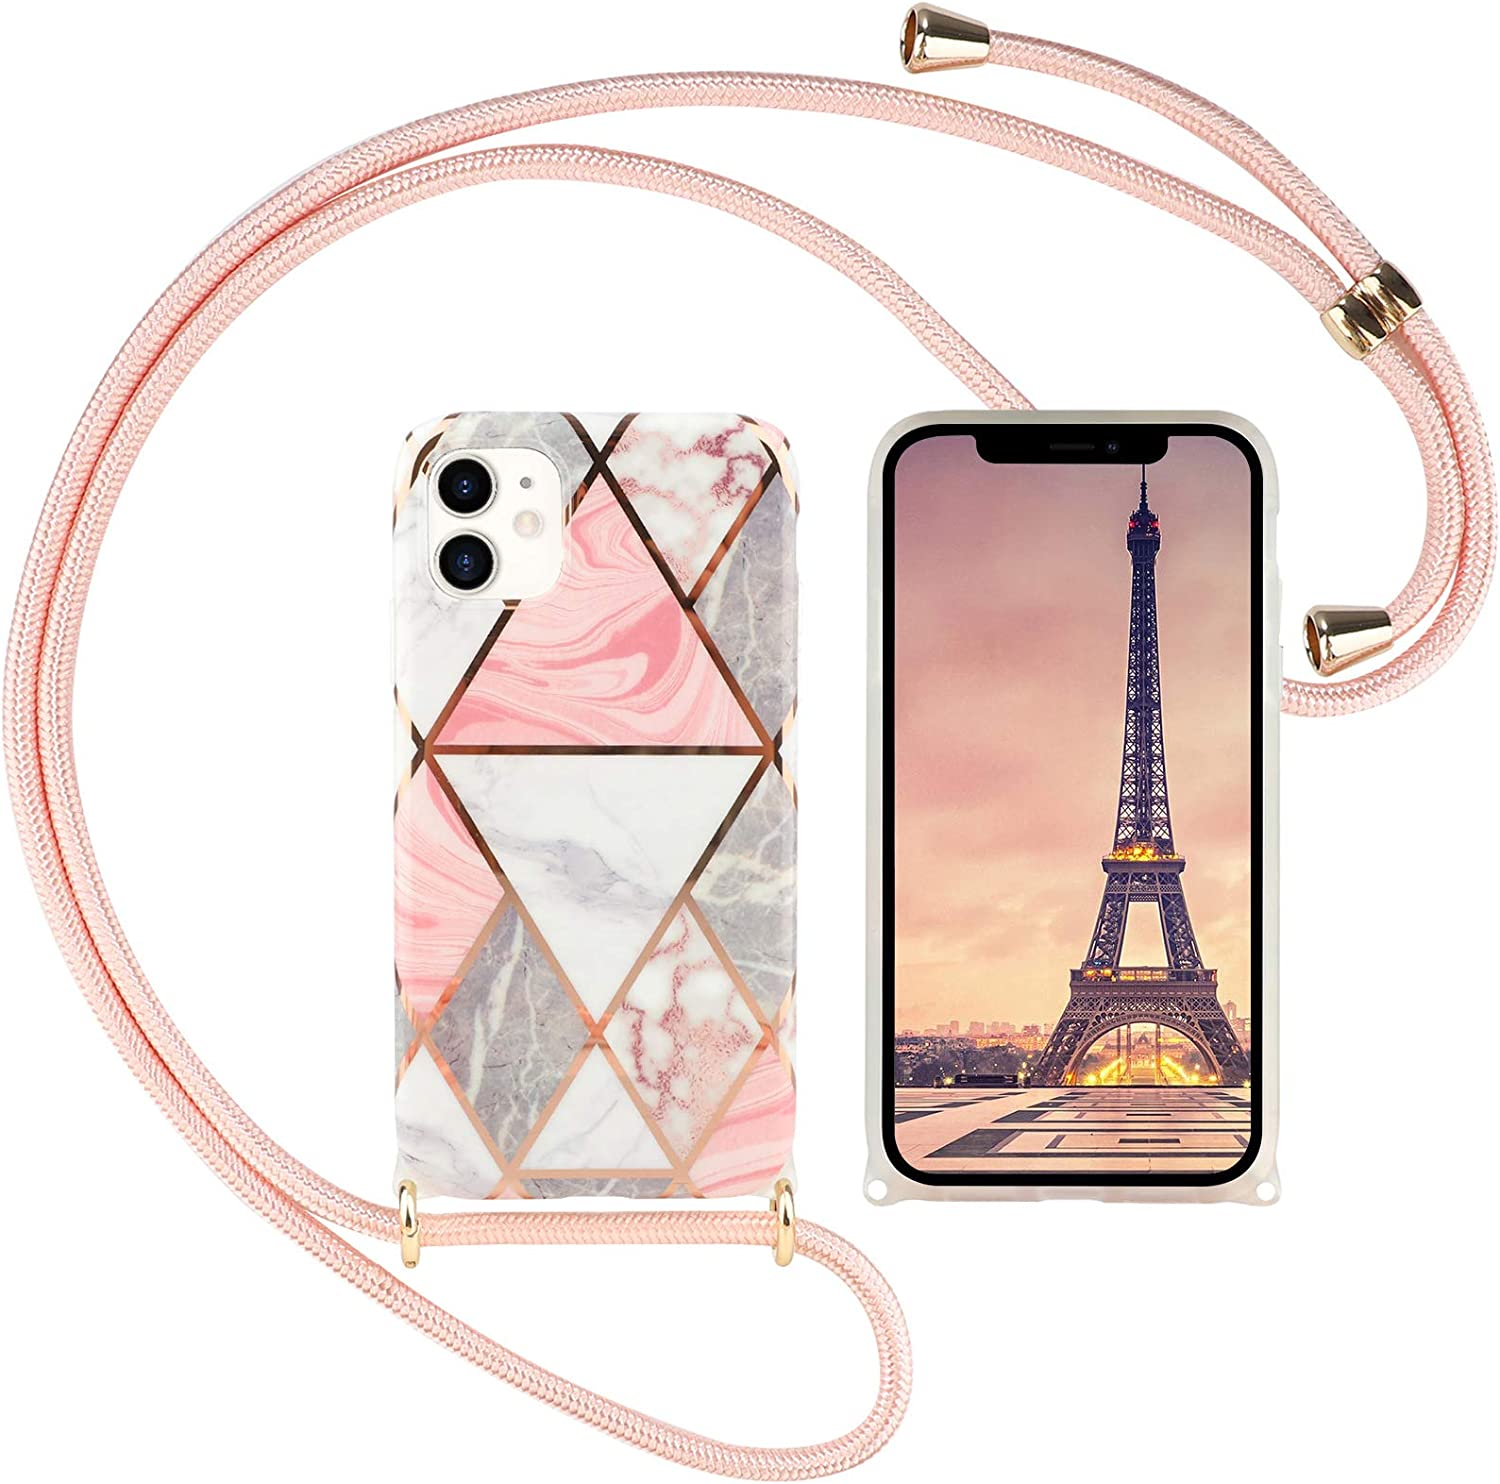 Herzzer For iPhone X XS Girly Crossbody with New products Max 69% OFF world's highest quality popular Plating Case Strap